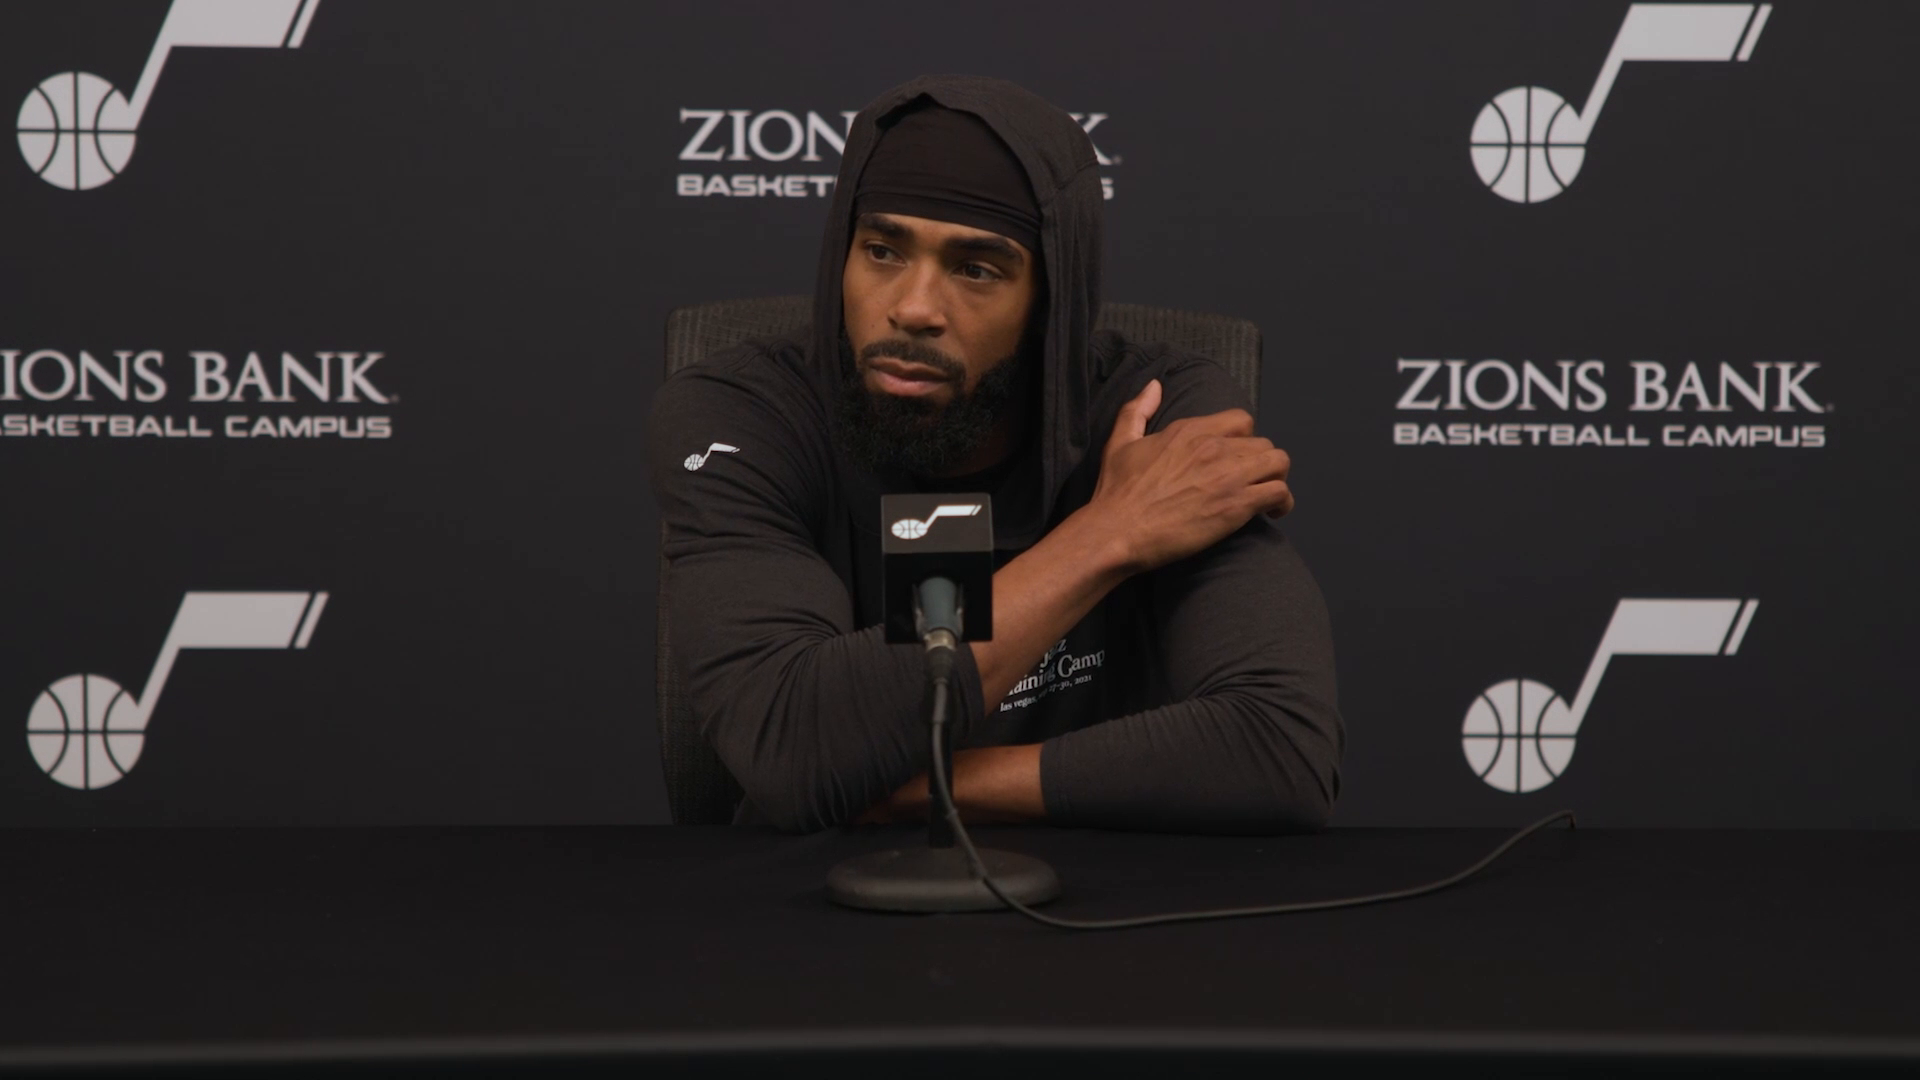 Shootaround 10.20—Mike Conley reflects on first game as a professional player.